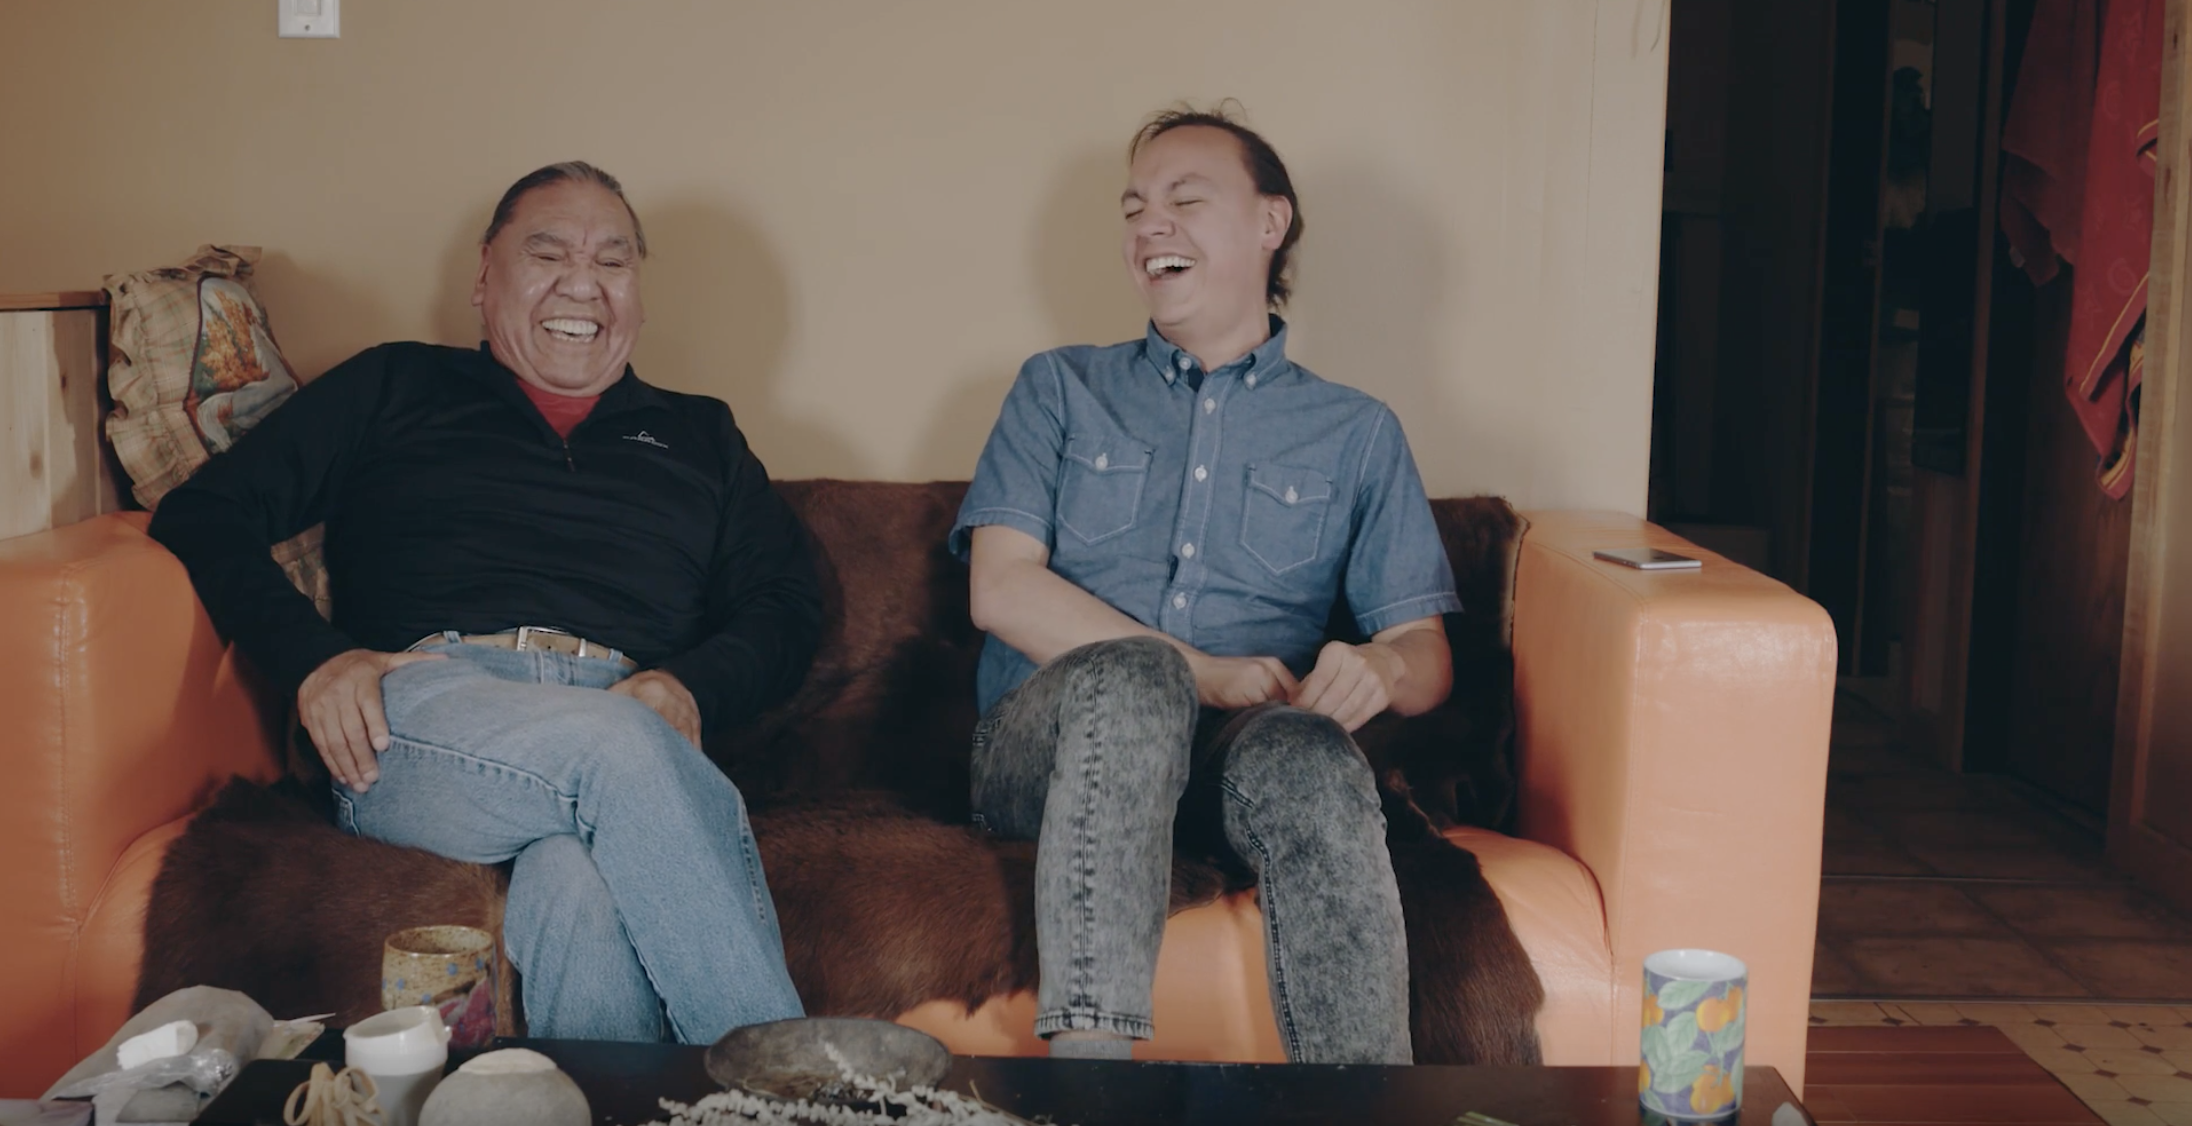 Picture of Max with his dad sitting on a couch laughing.